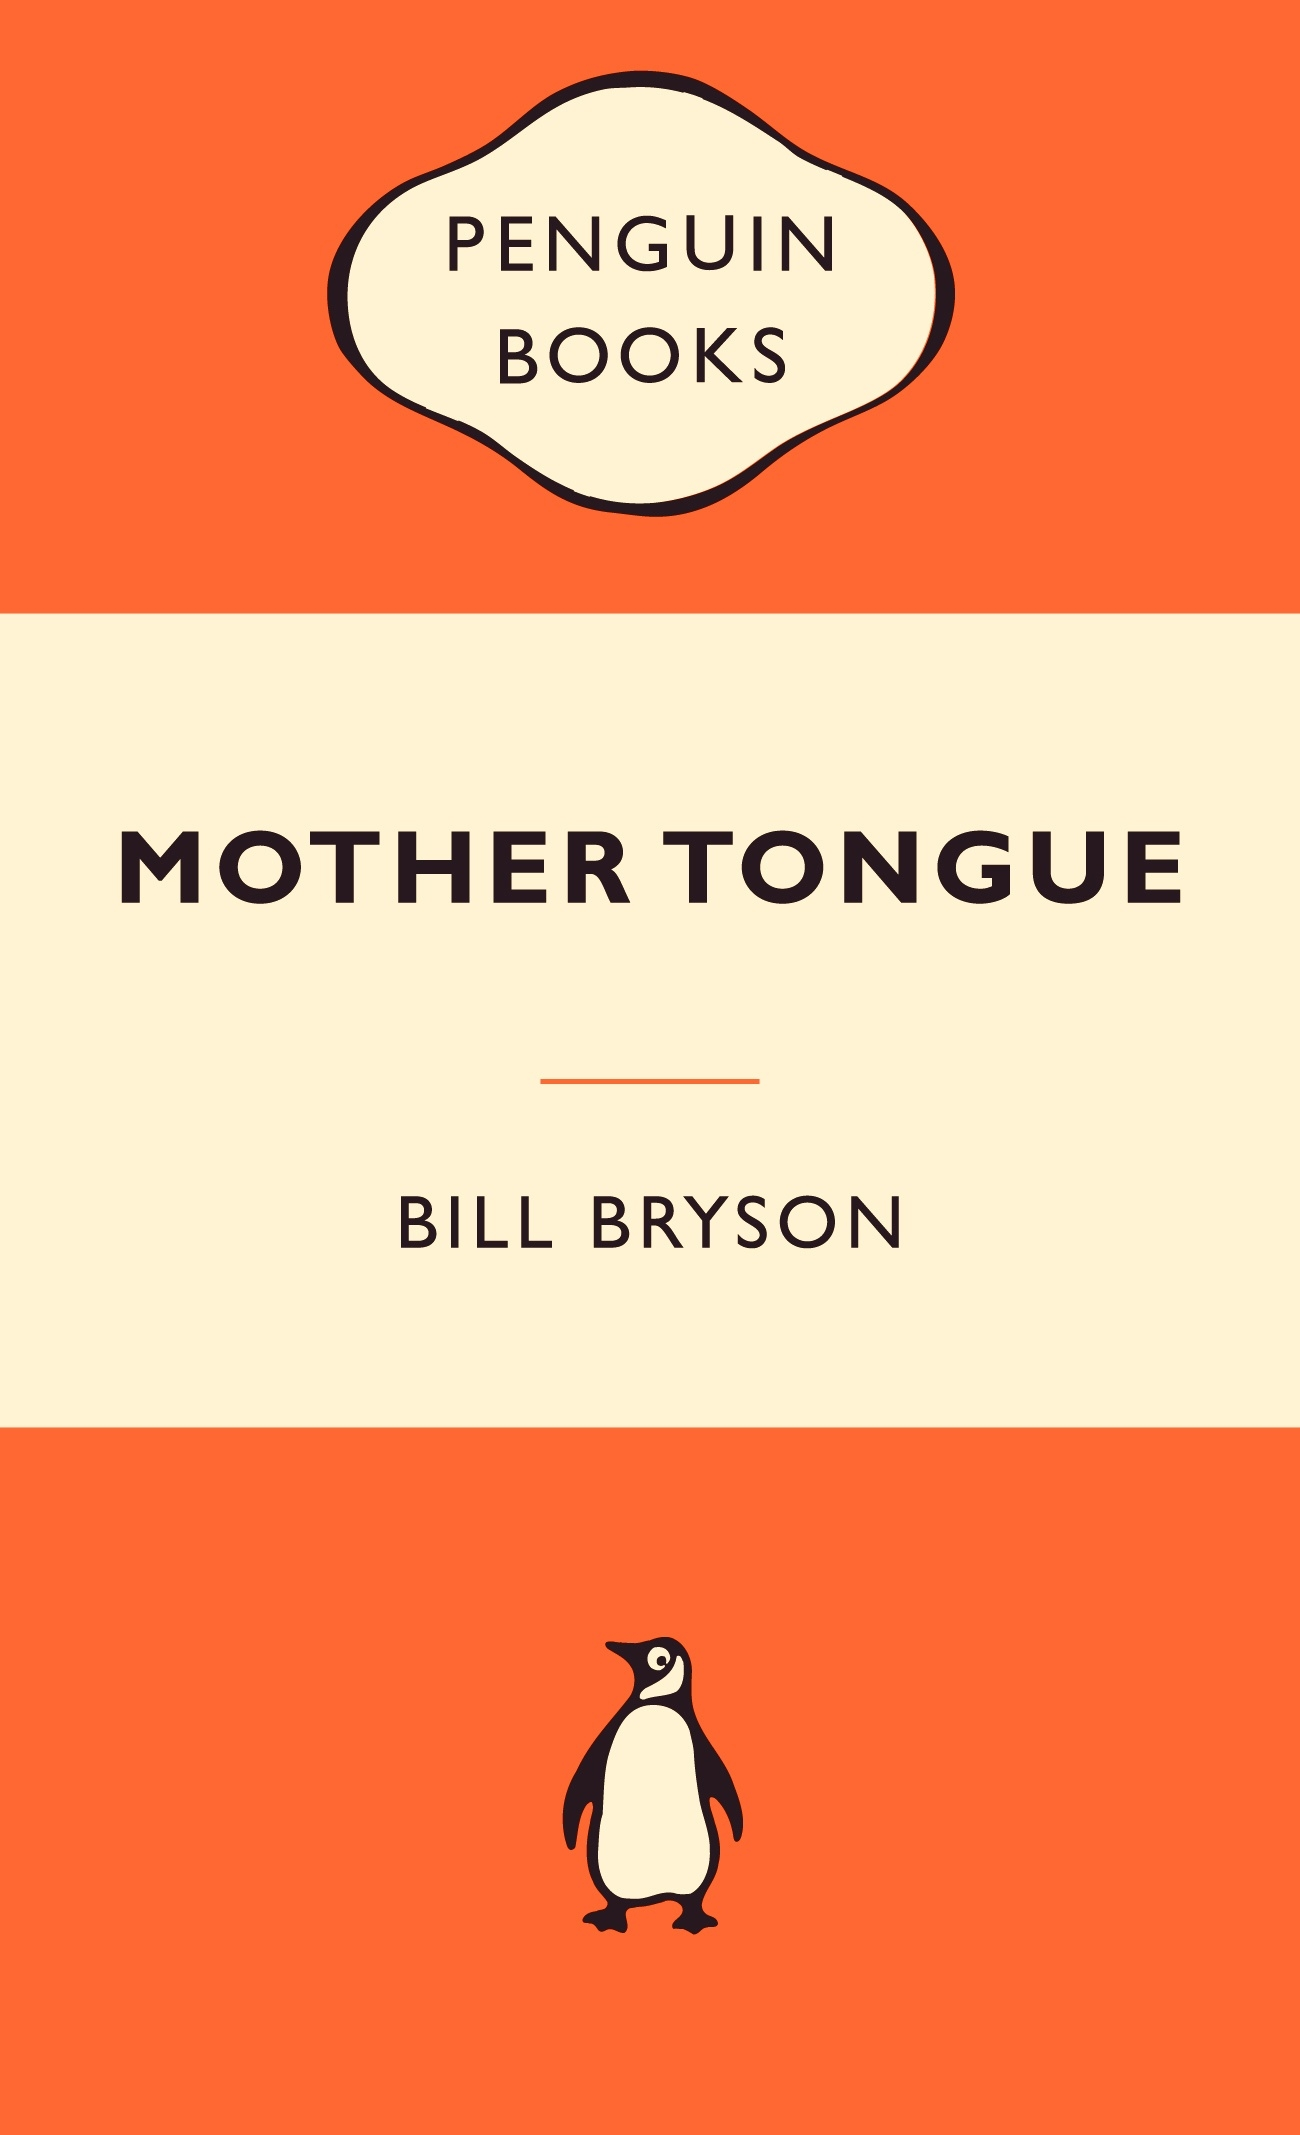 the mother tongue by bill bryson Bill bryson - mother tongue chapter contents 01 - the world's language 02 - the dawn of language 03 - global language 04 - the first thousand years.